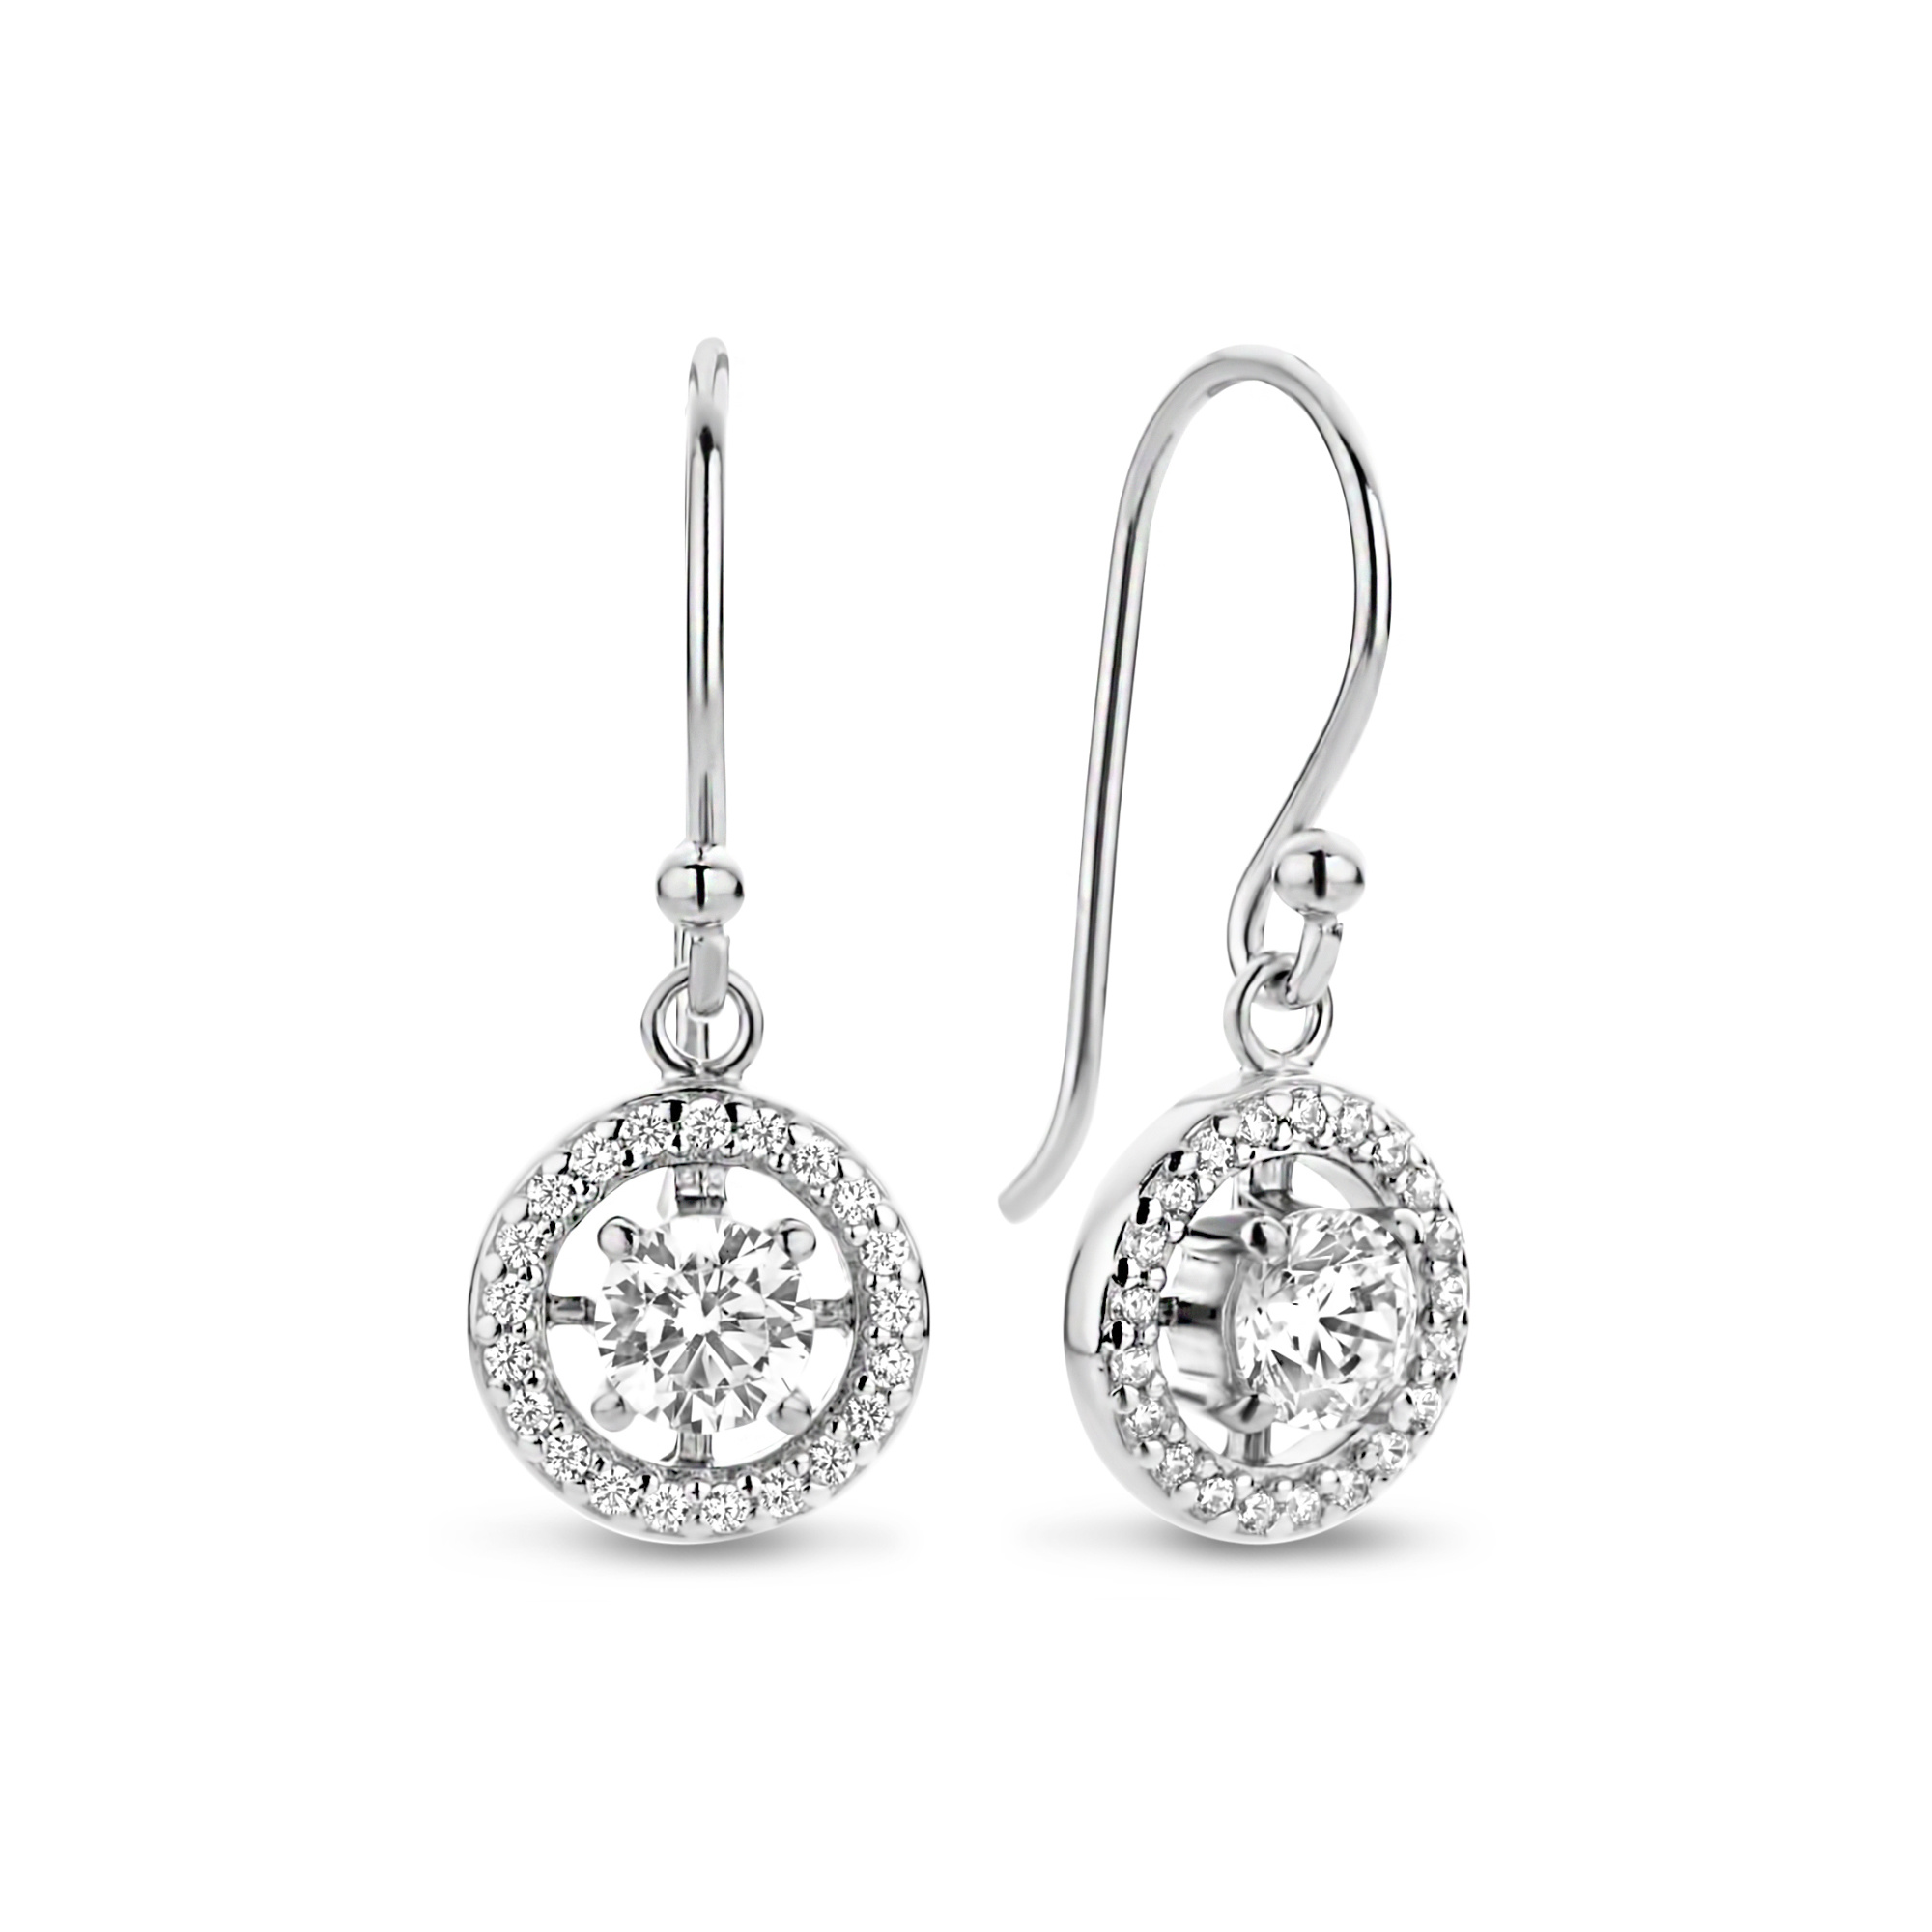 Parte di Me Luce Mia Dalia 925 sterling silver drop earrings with zirconia